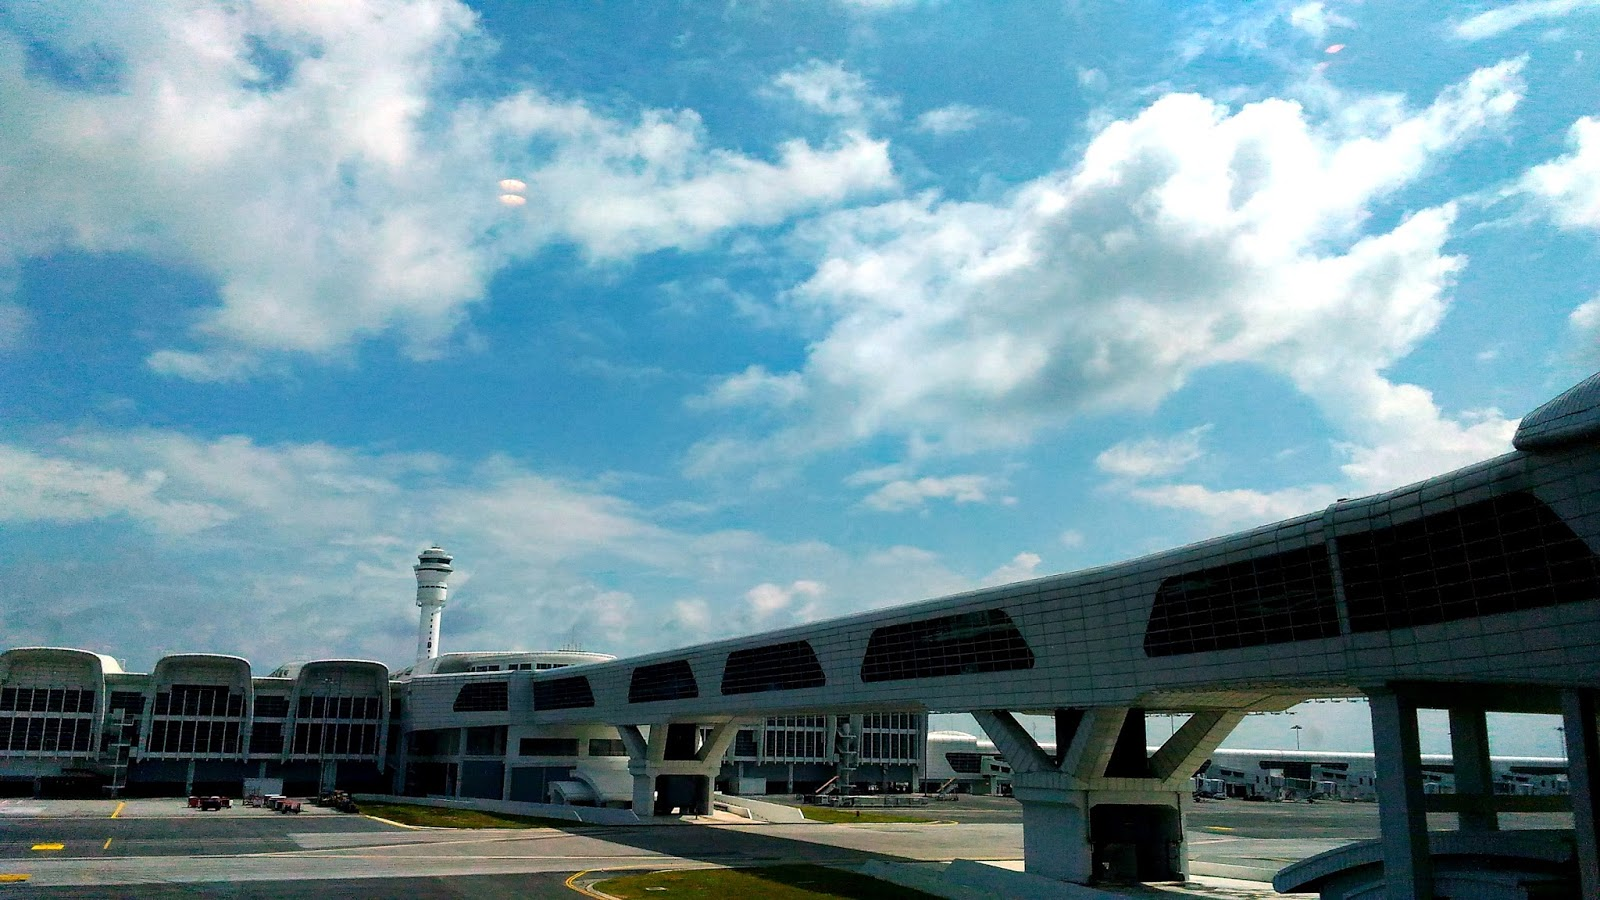 Officially opened in May, 2014, KLIA 2 was designed to be Malaysia's next generation international airport hub to meet the emerging low cost travel sector capable of servicing 45 million passengers a year in total comfort.